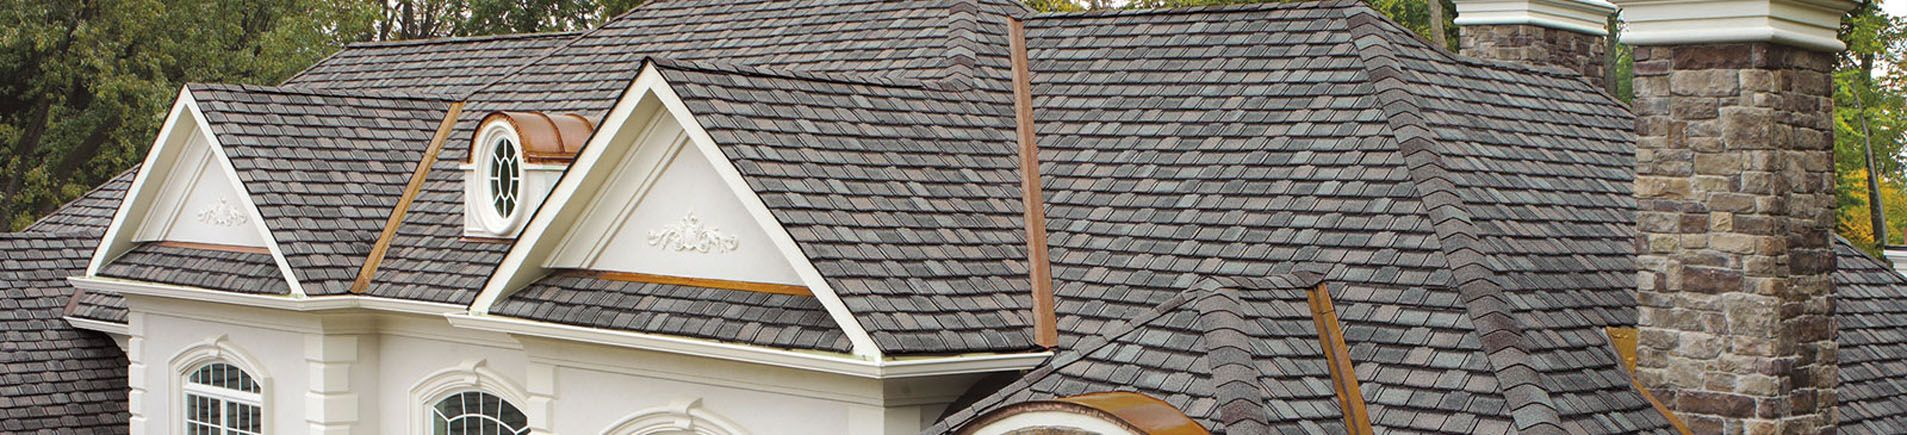 Arry S Roofing Residential And Commercial Roofing